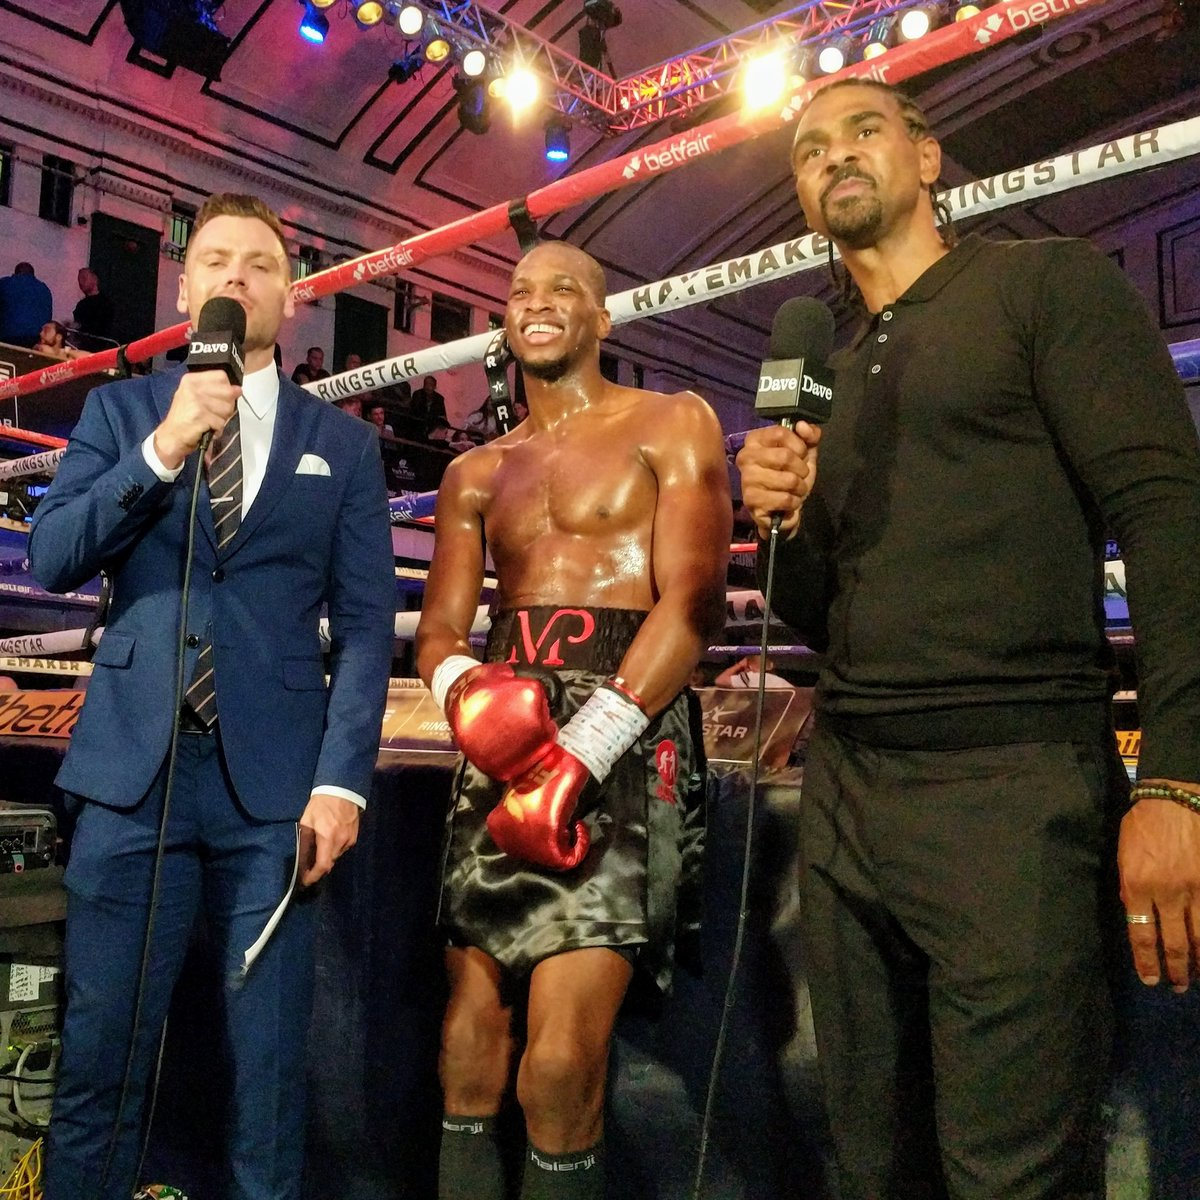 Michael Venom Page all smiles during his on air post fight interview with Andy Shepherd and David Haye. #DaveFightNight